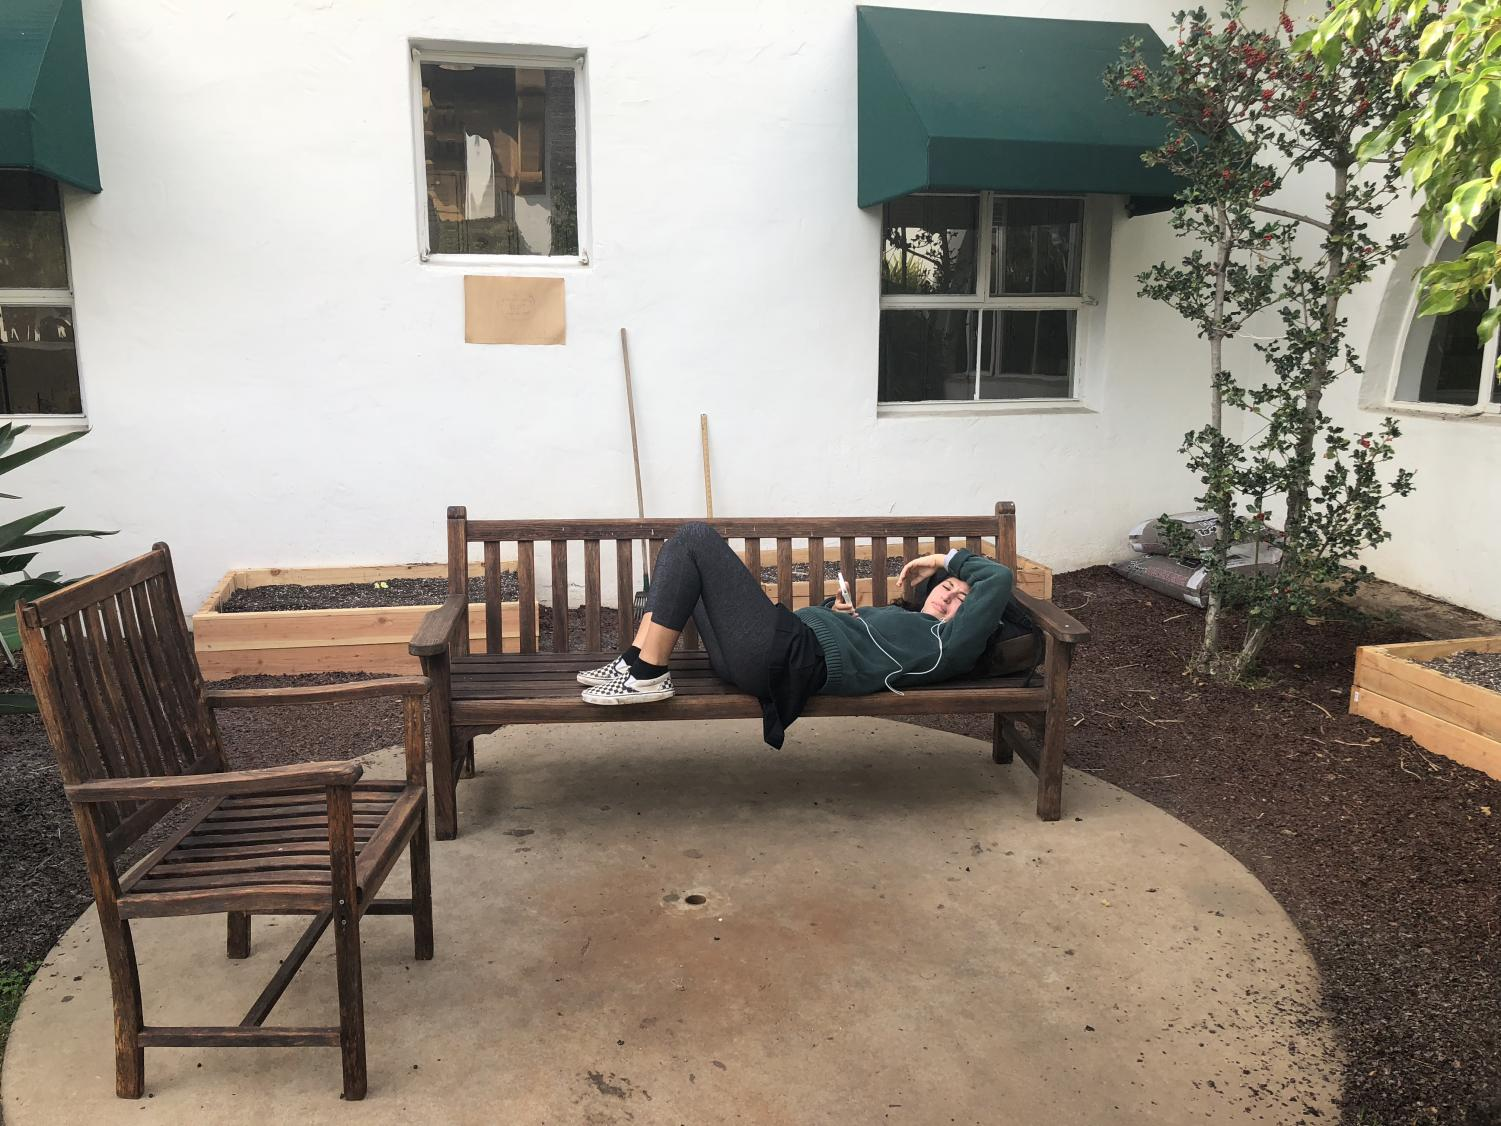 Jael Ellman '18 relaxes on the bench in the courtyard's garden before heading to class. Students often eat lunch or spend time in this community space.